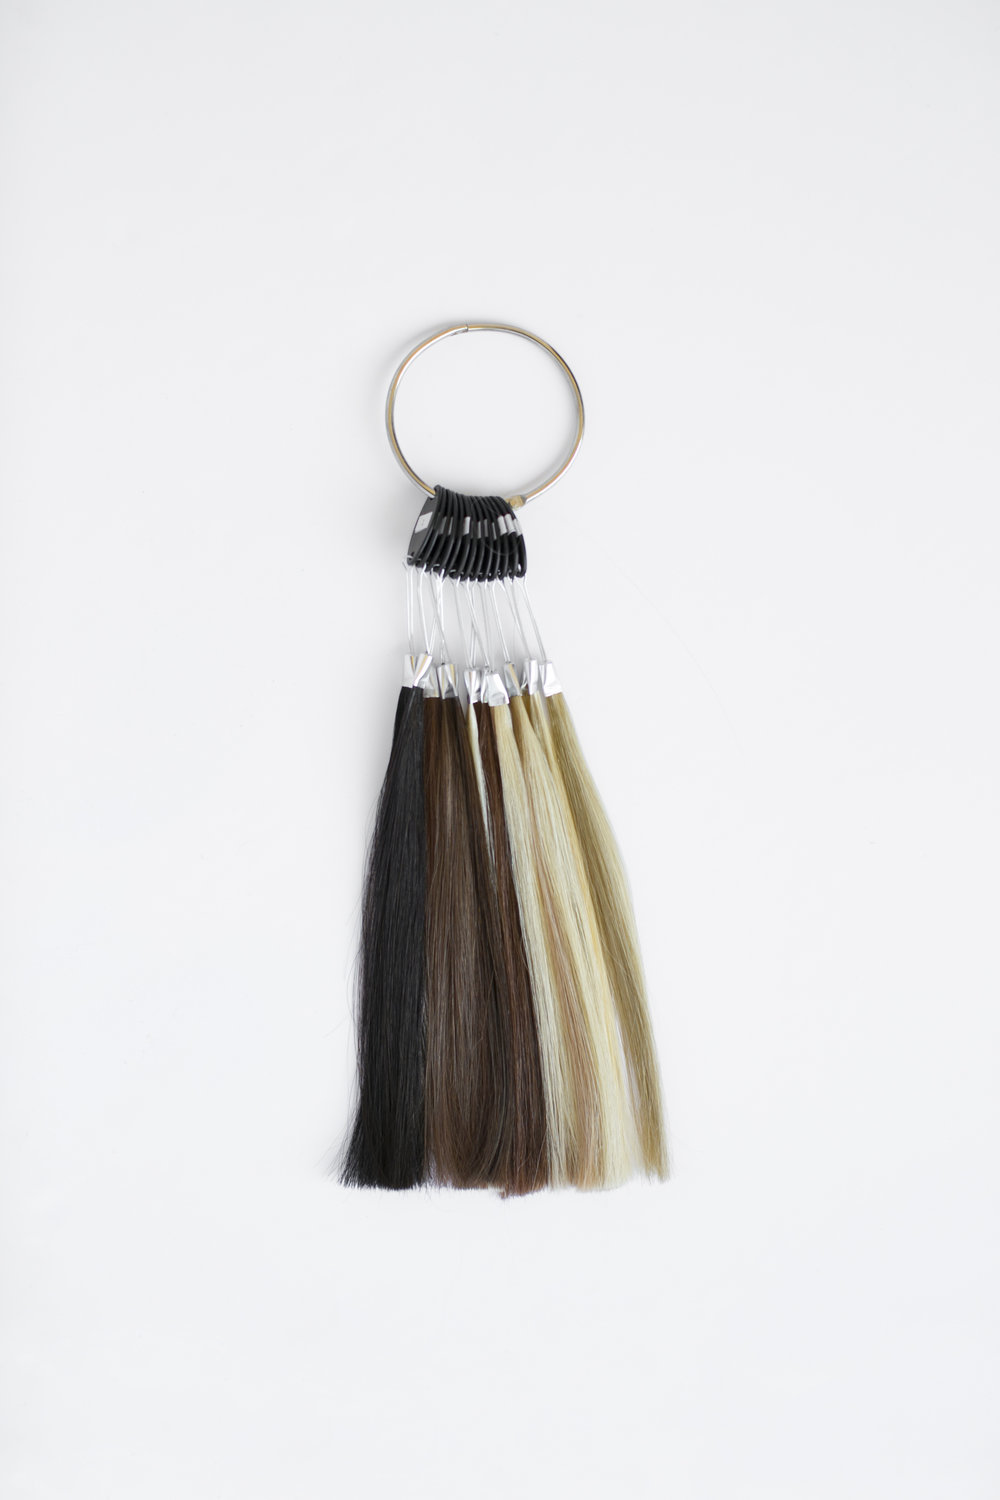 THM Hair Extension Swatch and Switch.jpg